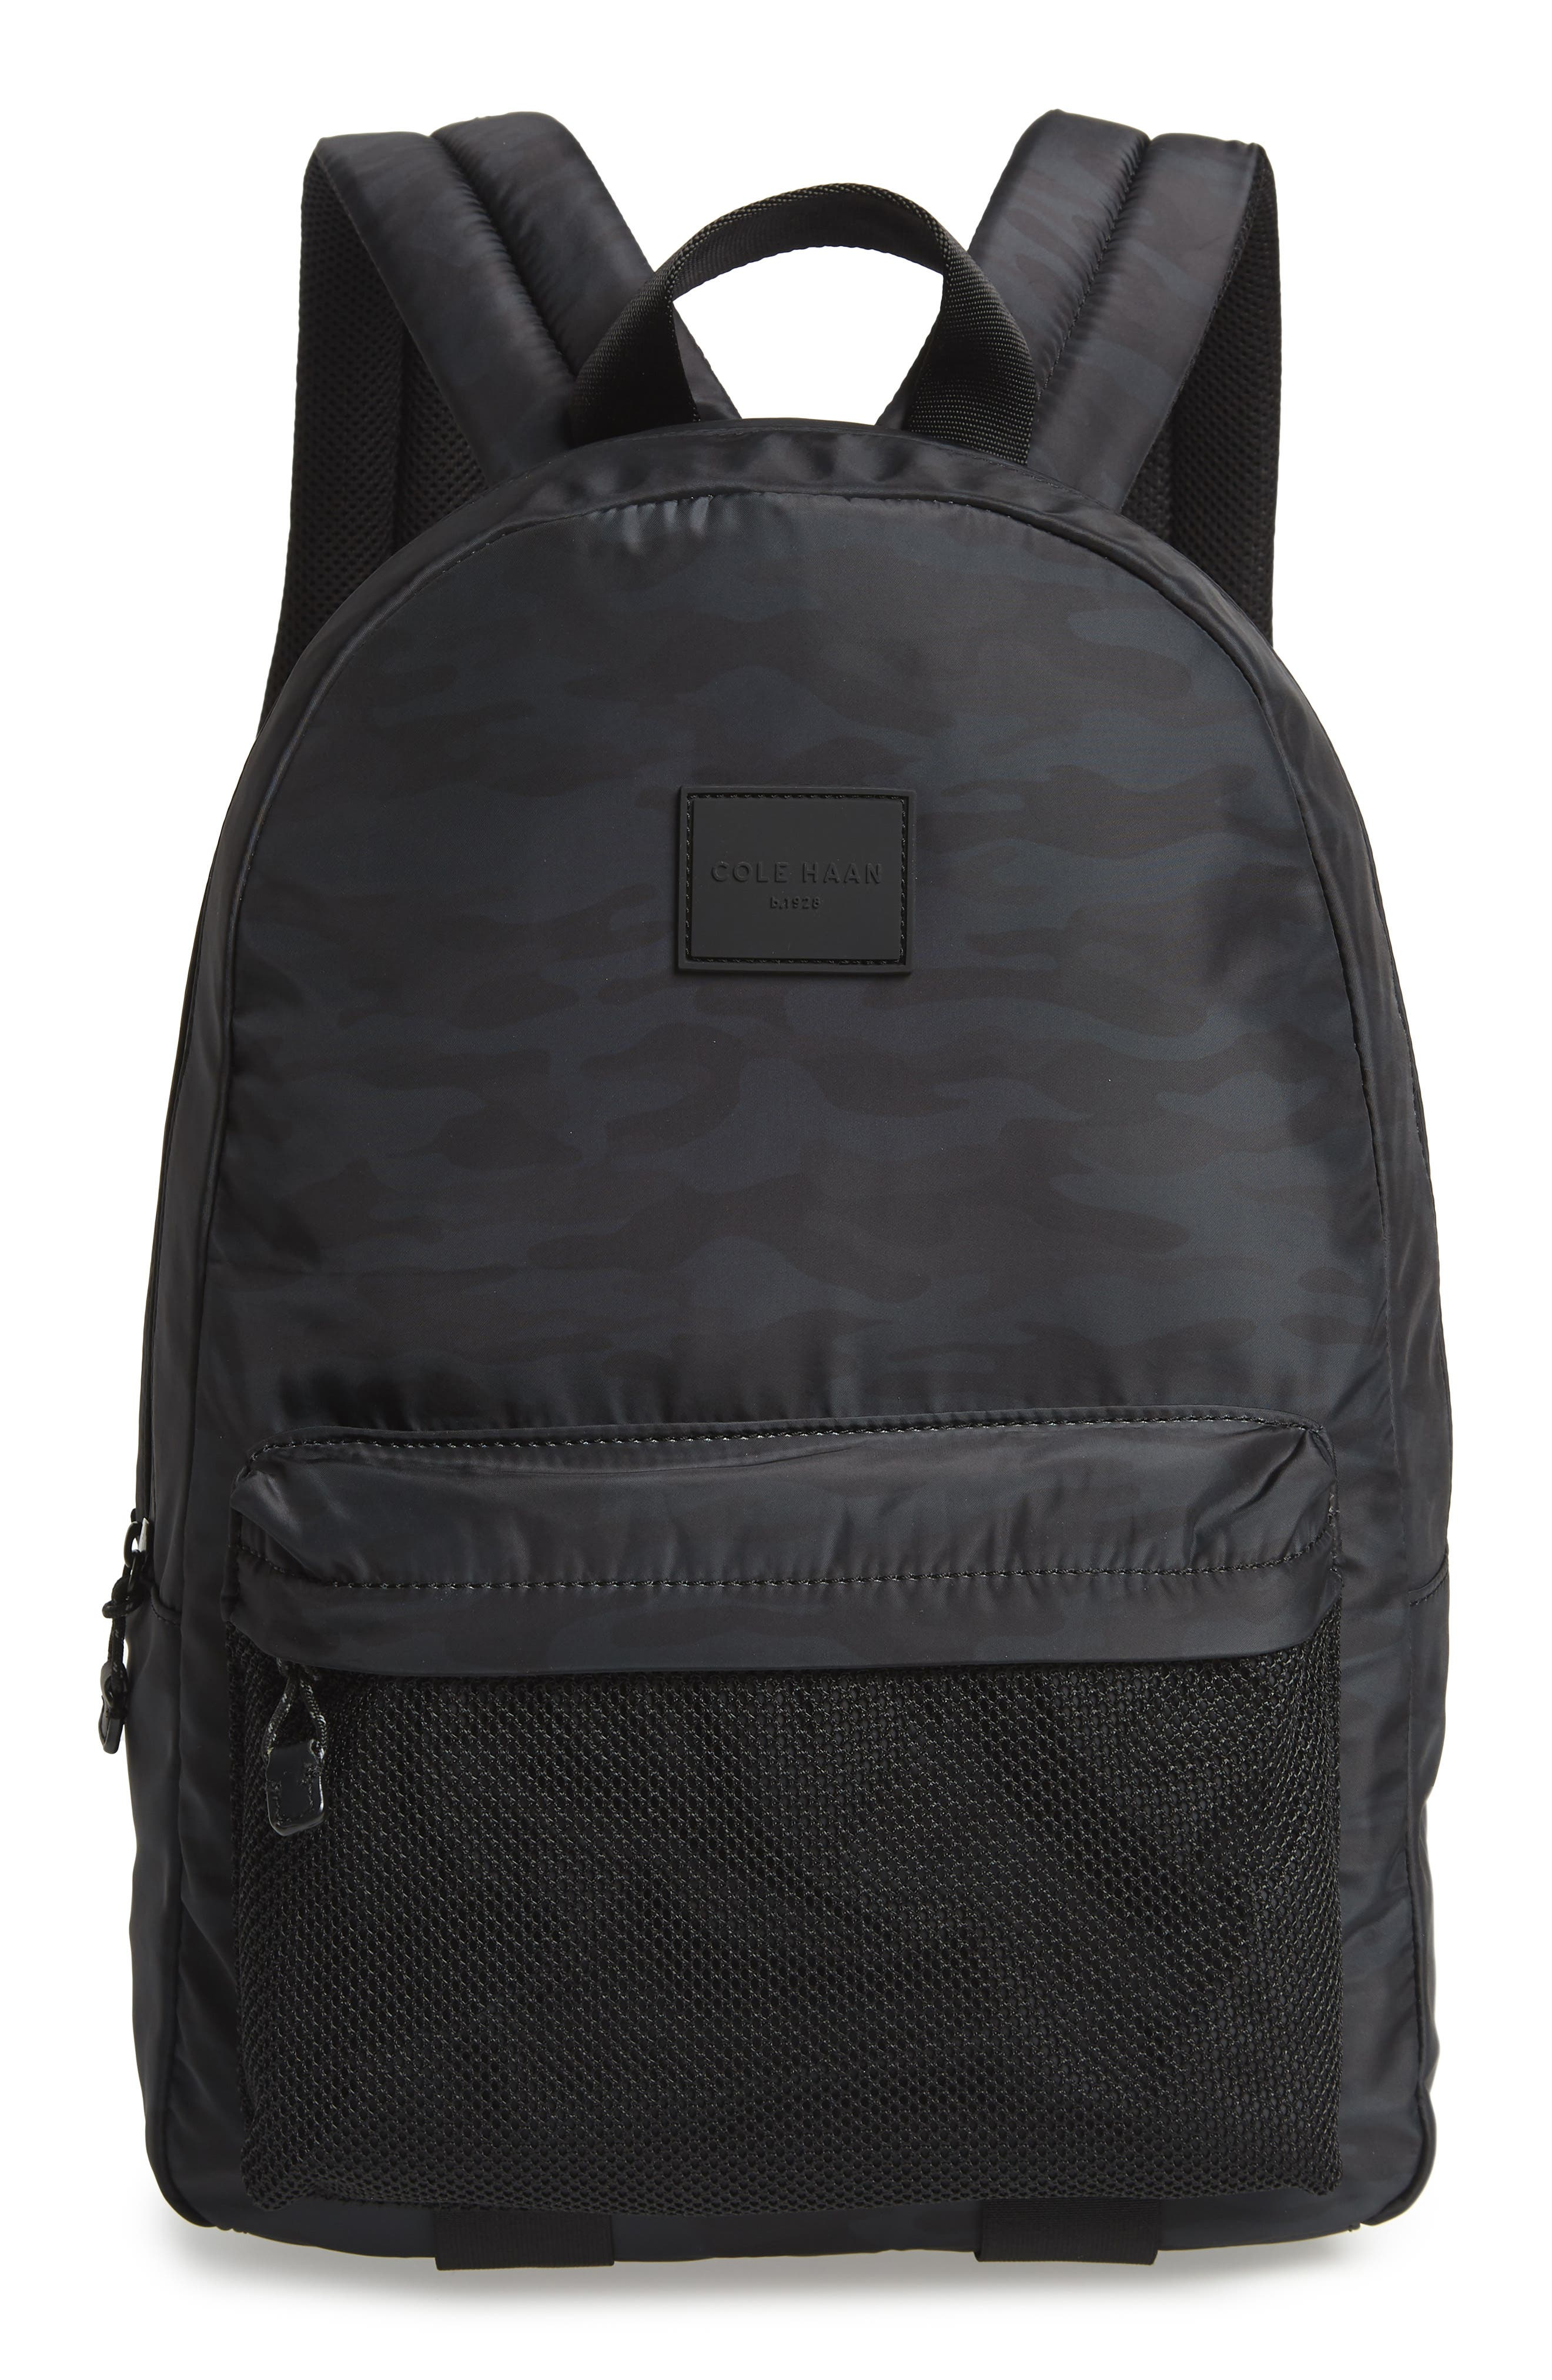 COLE HAAN, Sawyer Backpack, Main thumbnail 1, color, CAMO